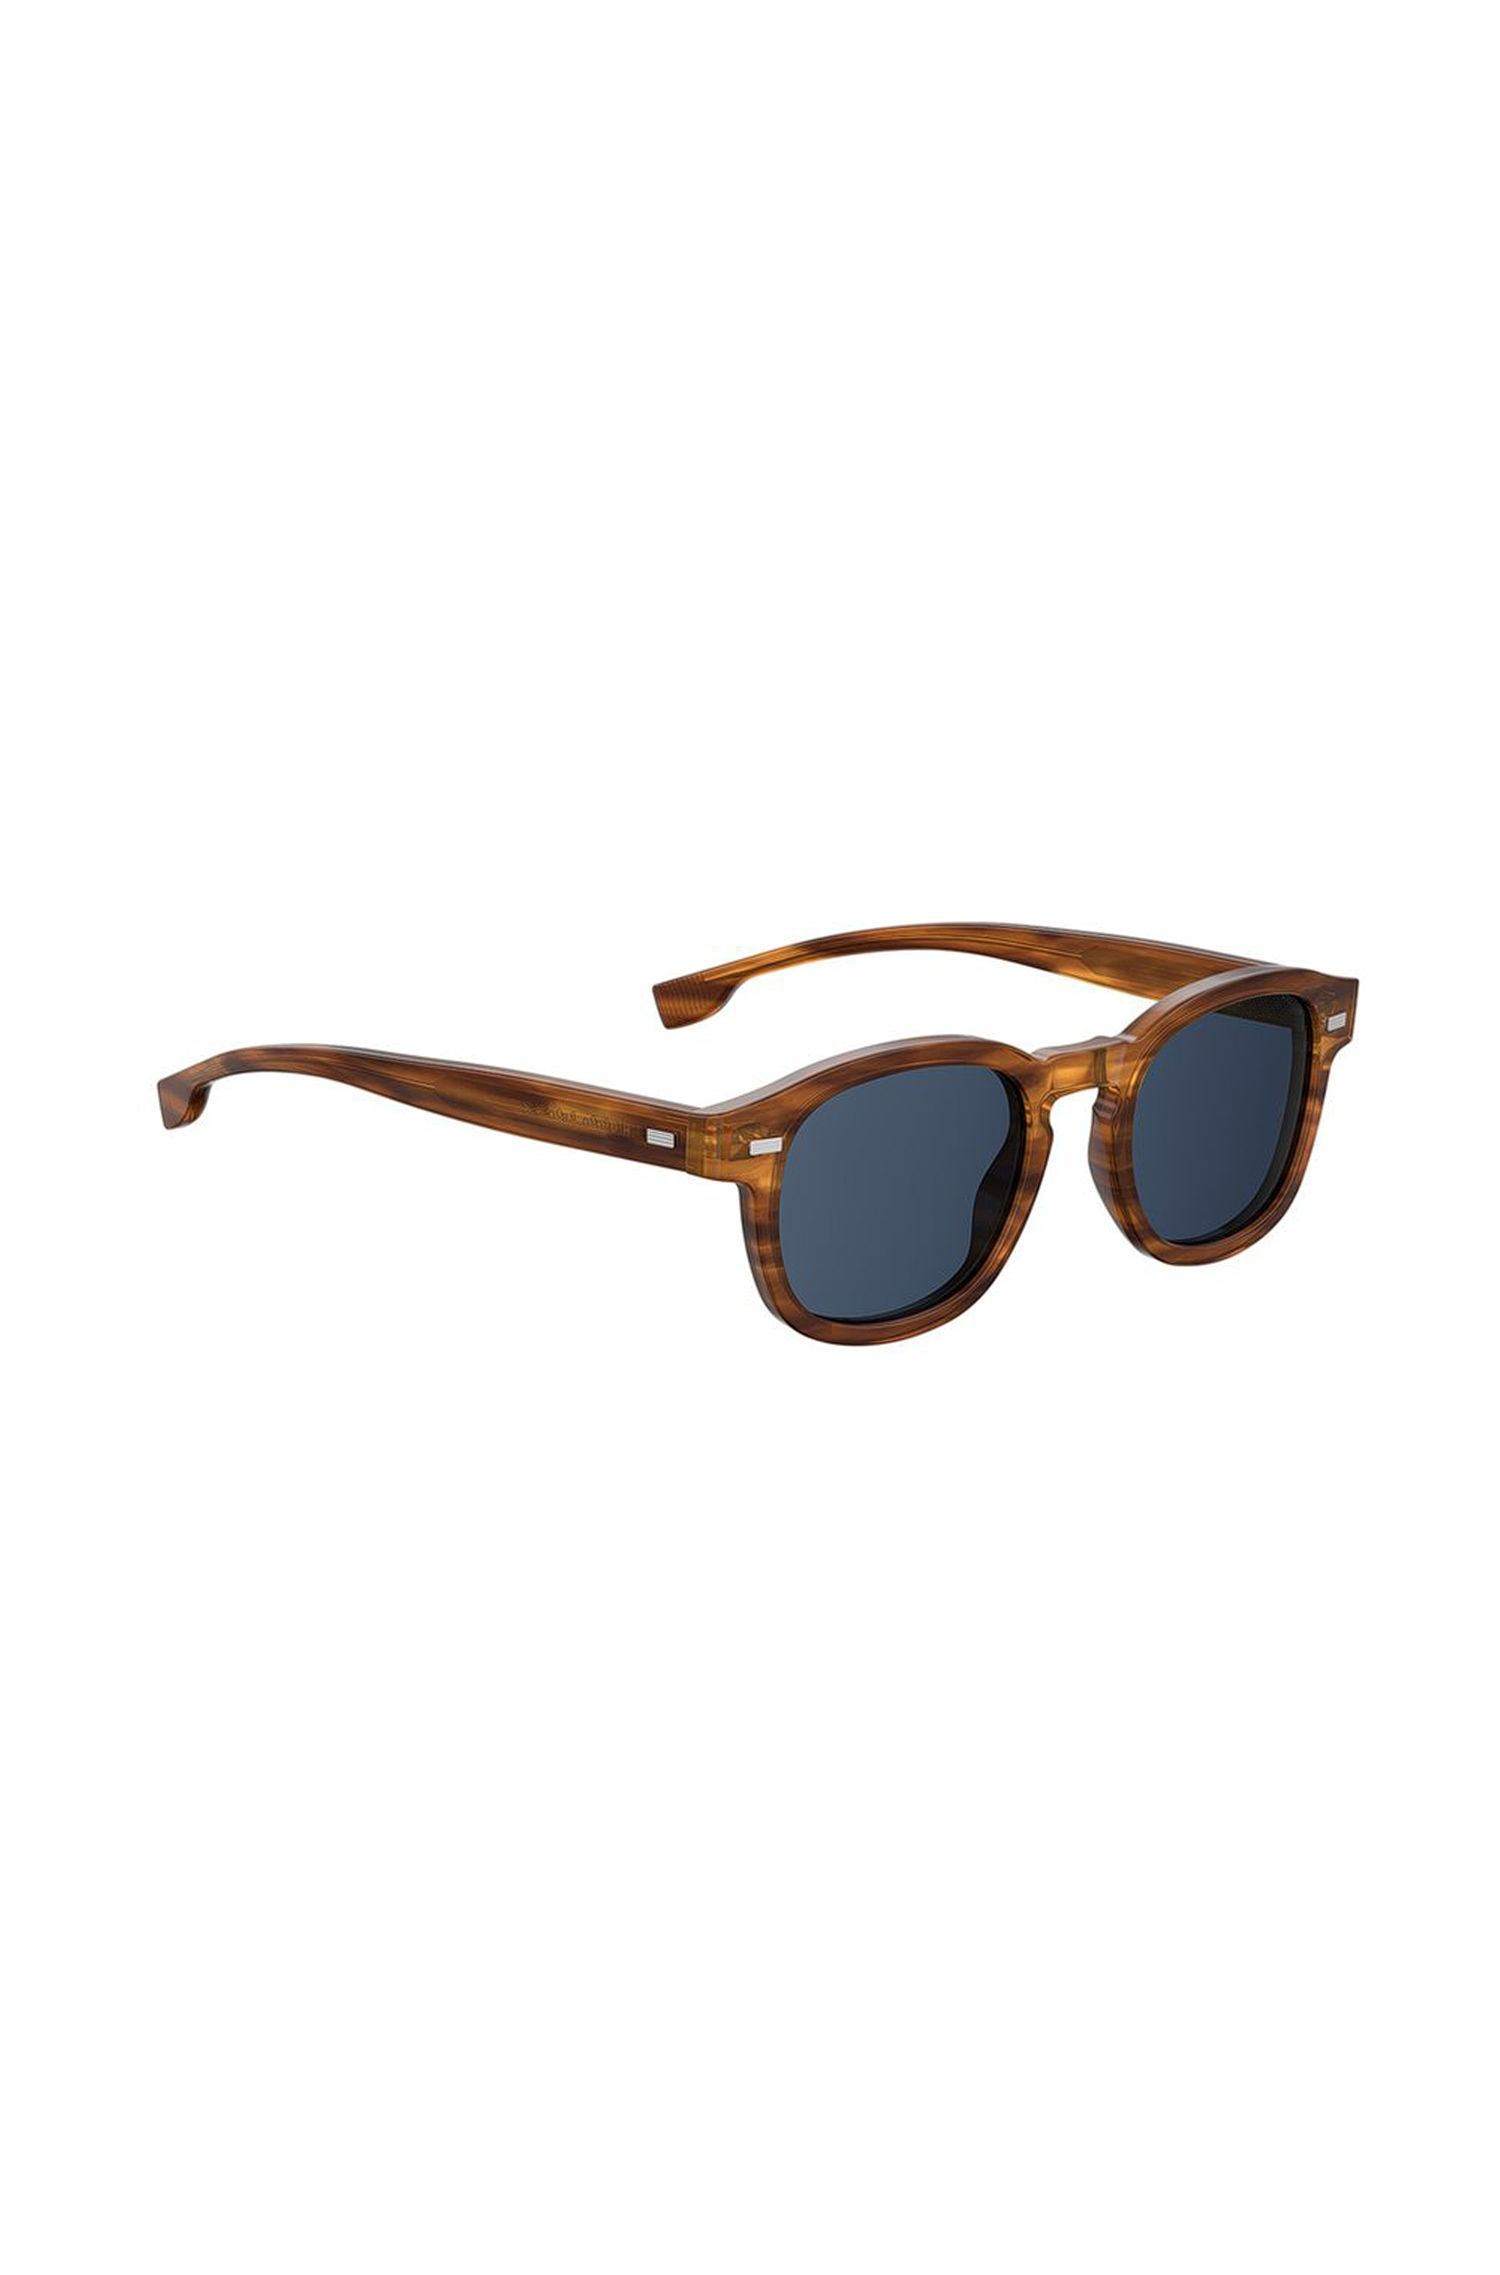 Keyhole-nose sunglasses in tortoiseshell acetate, Assorted-Pre-Pack